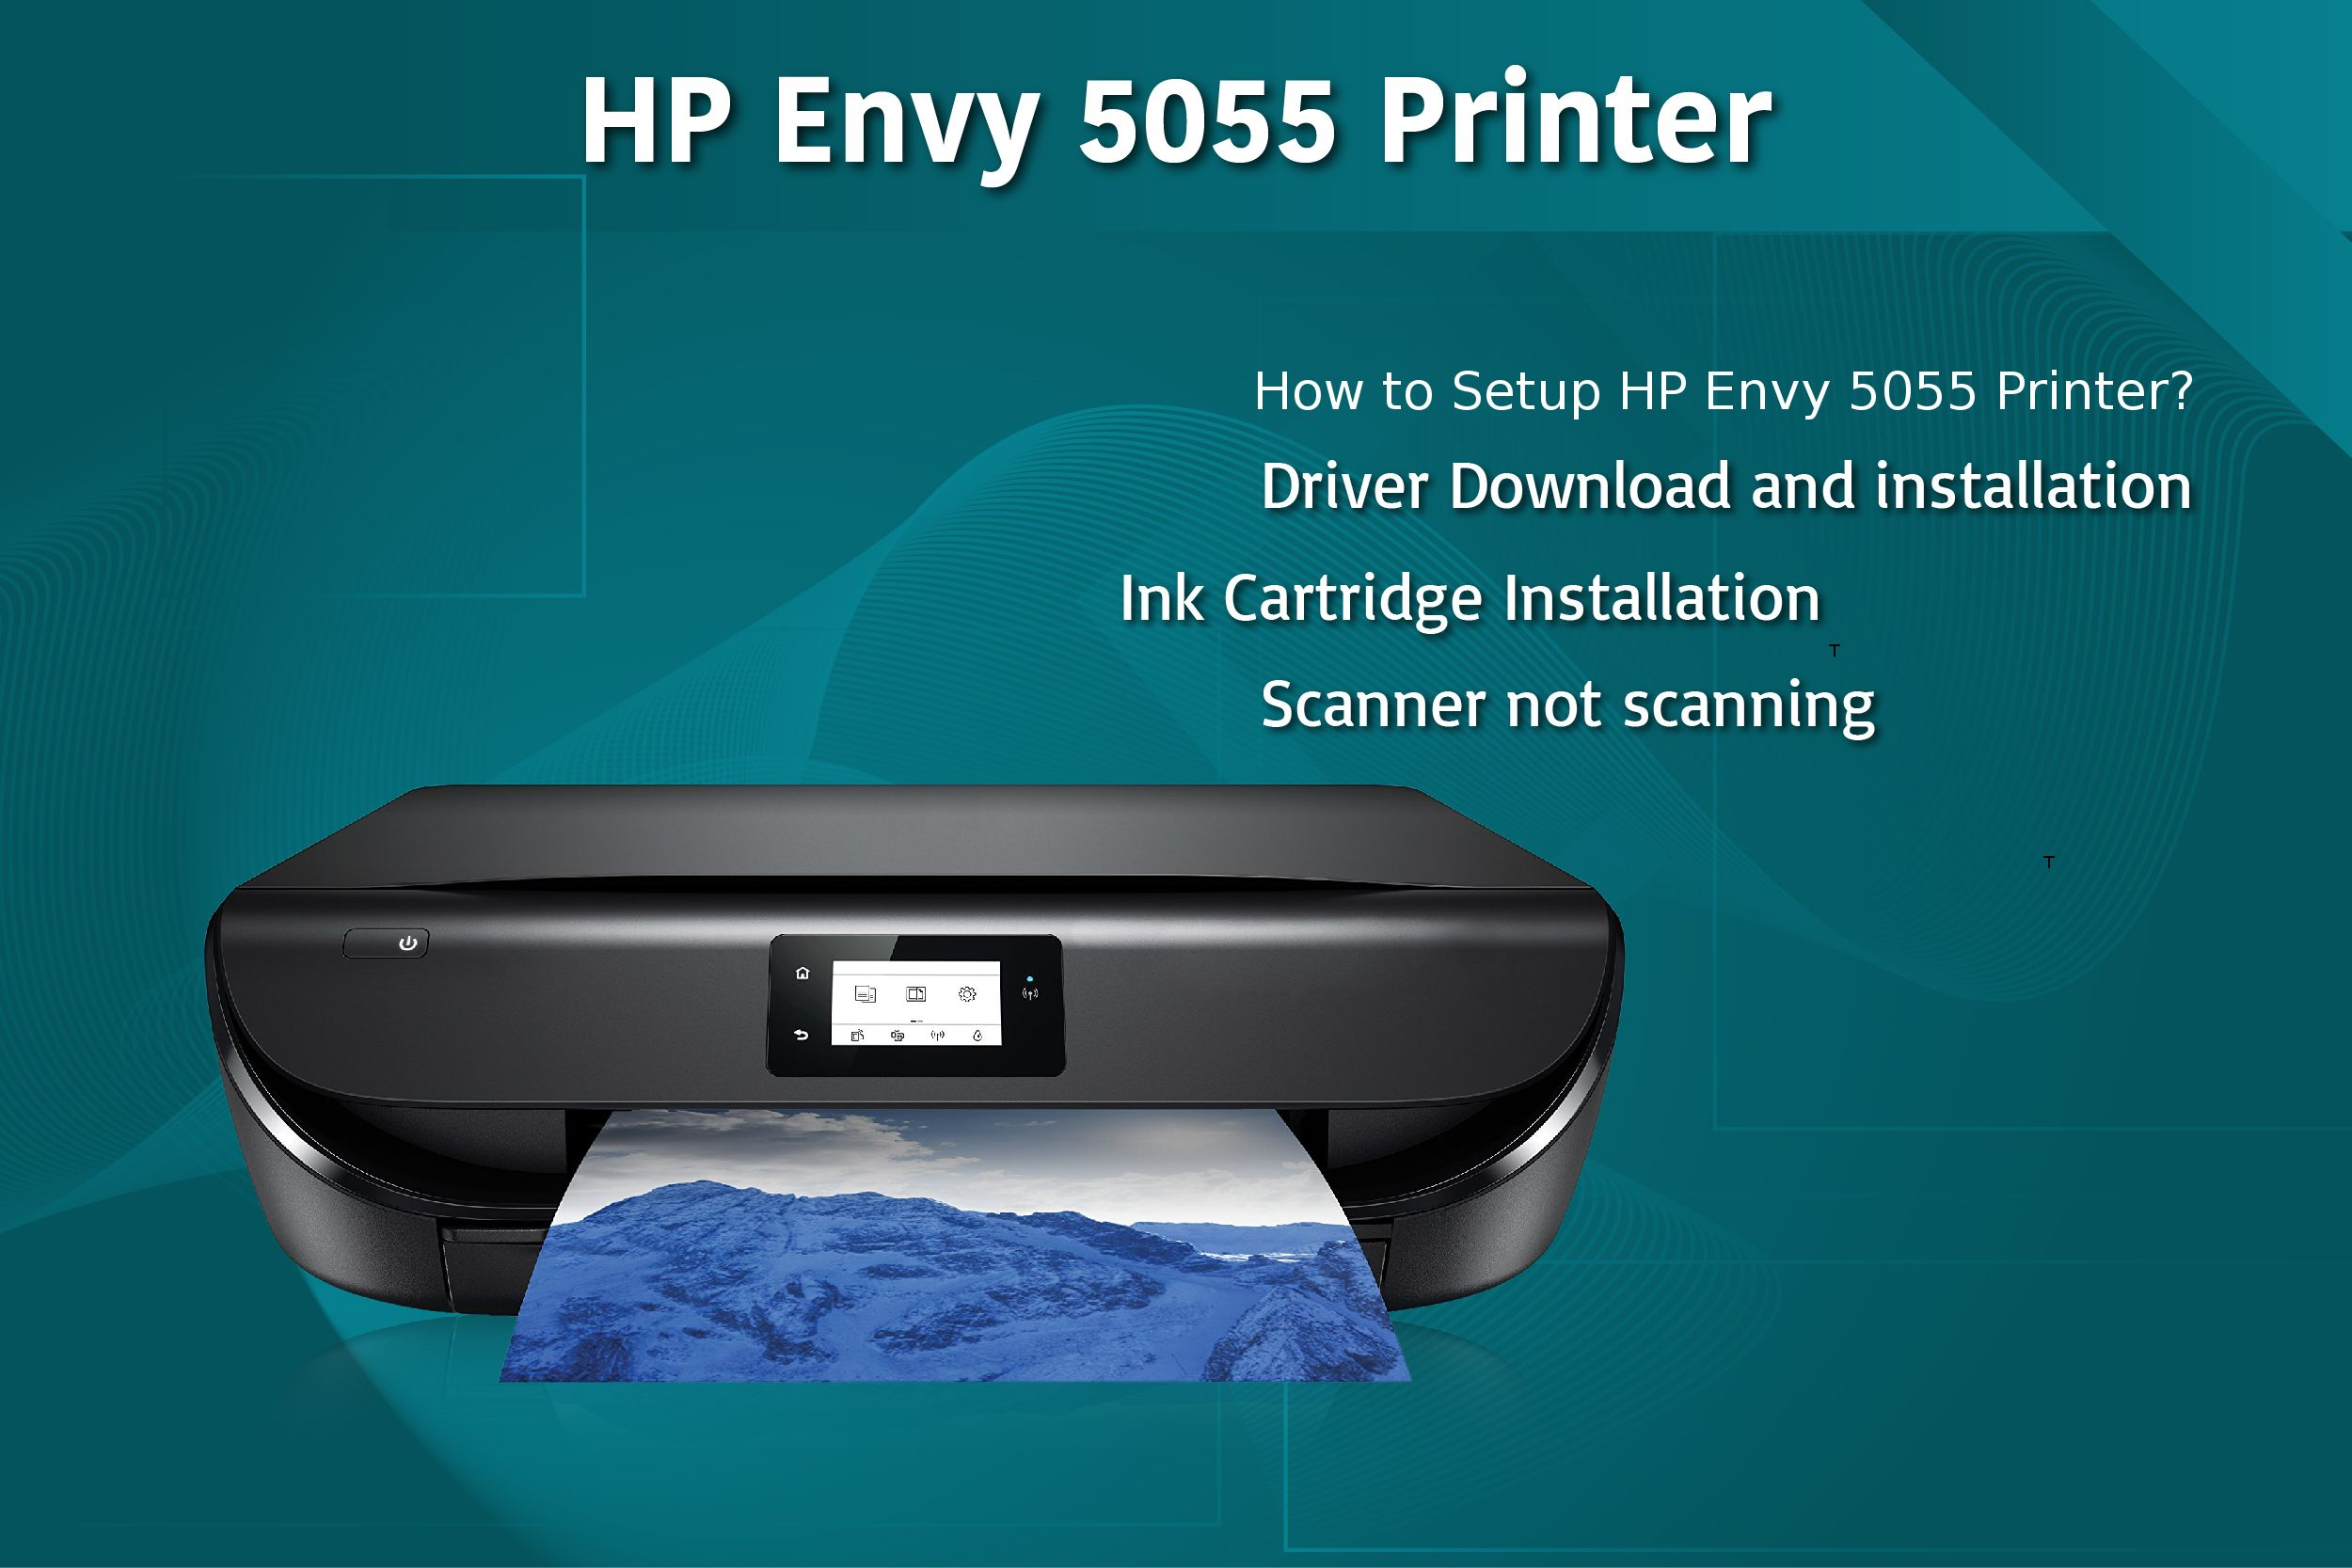 How to Setup Hp envy 5055 Printer & Driver Installation Guidance